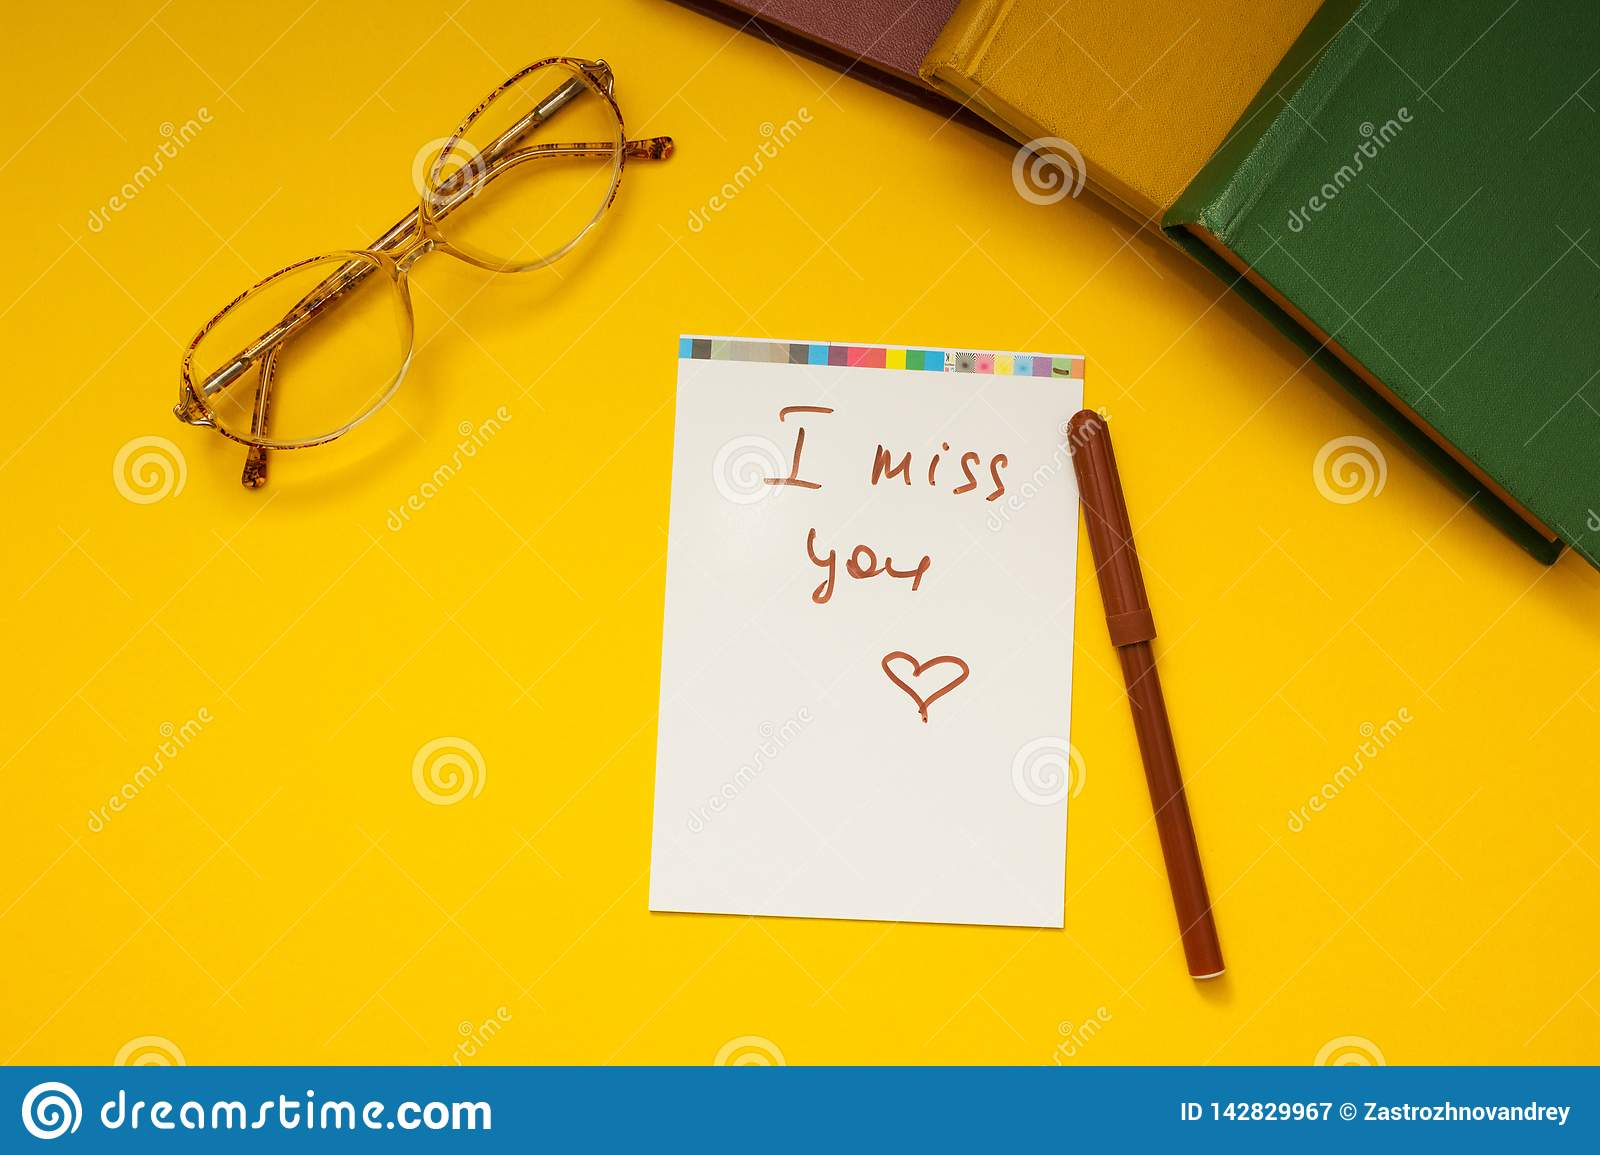 The inscription `I miss you` on a yellow background, glasses and books together.